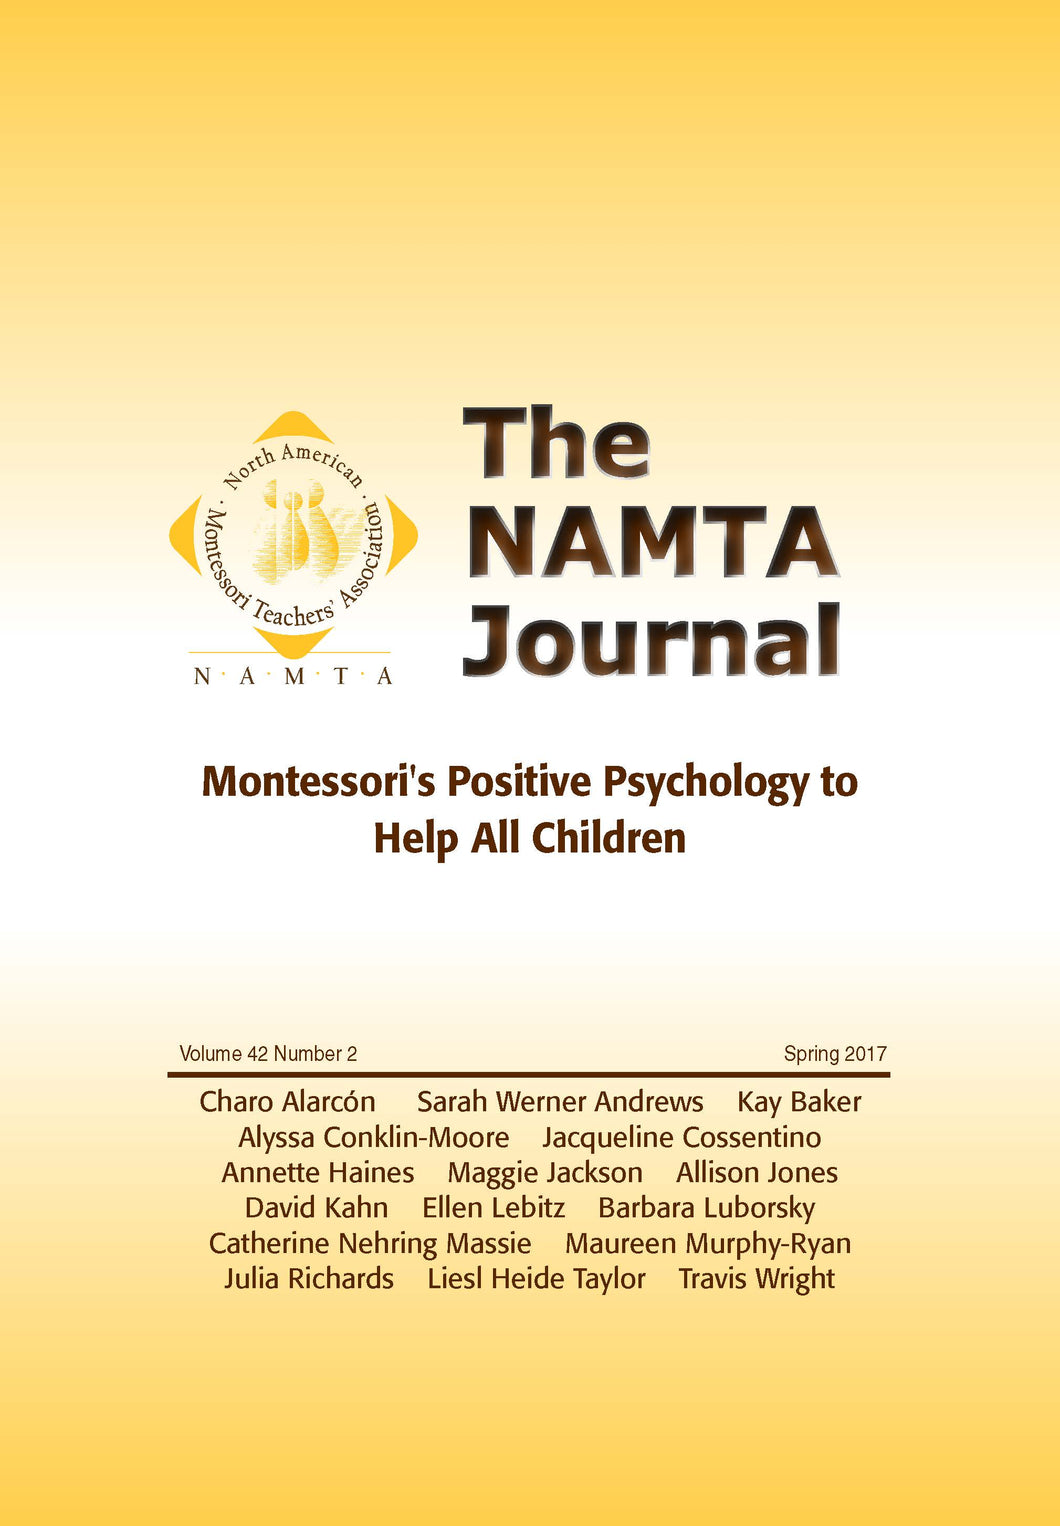 Vol 42, No 2: Montessori's Positive Psychology to Help All children